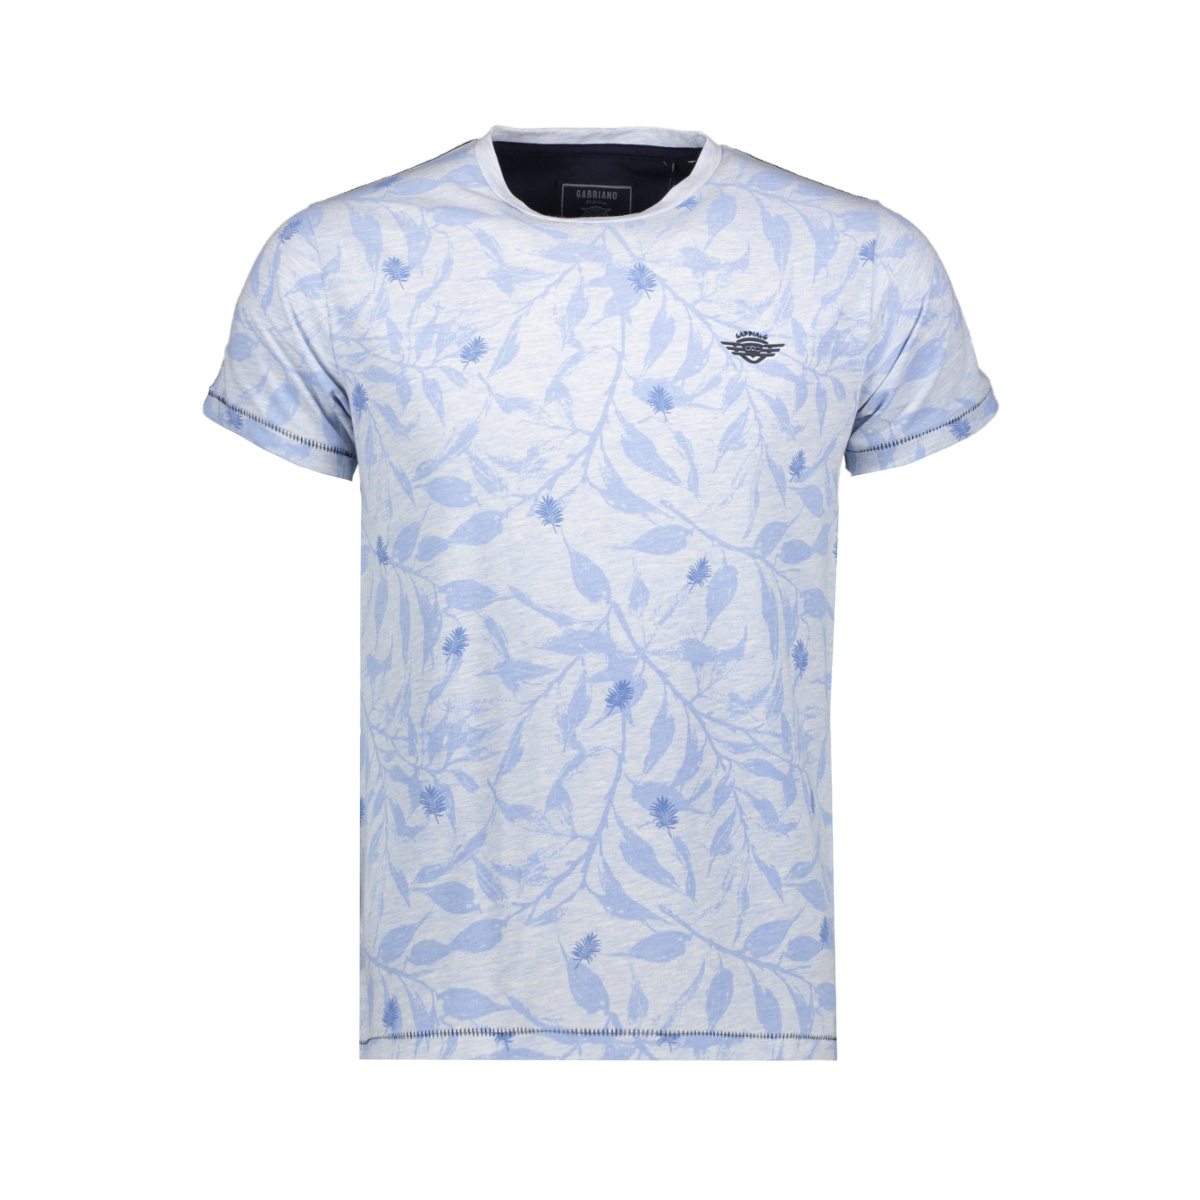 t shirt 15121 gabbiano t-shirt blue